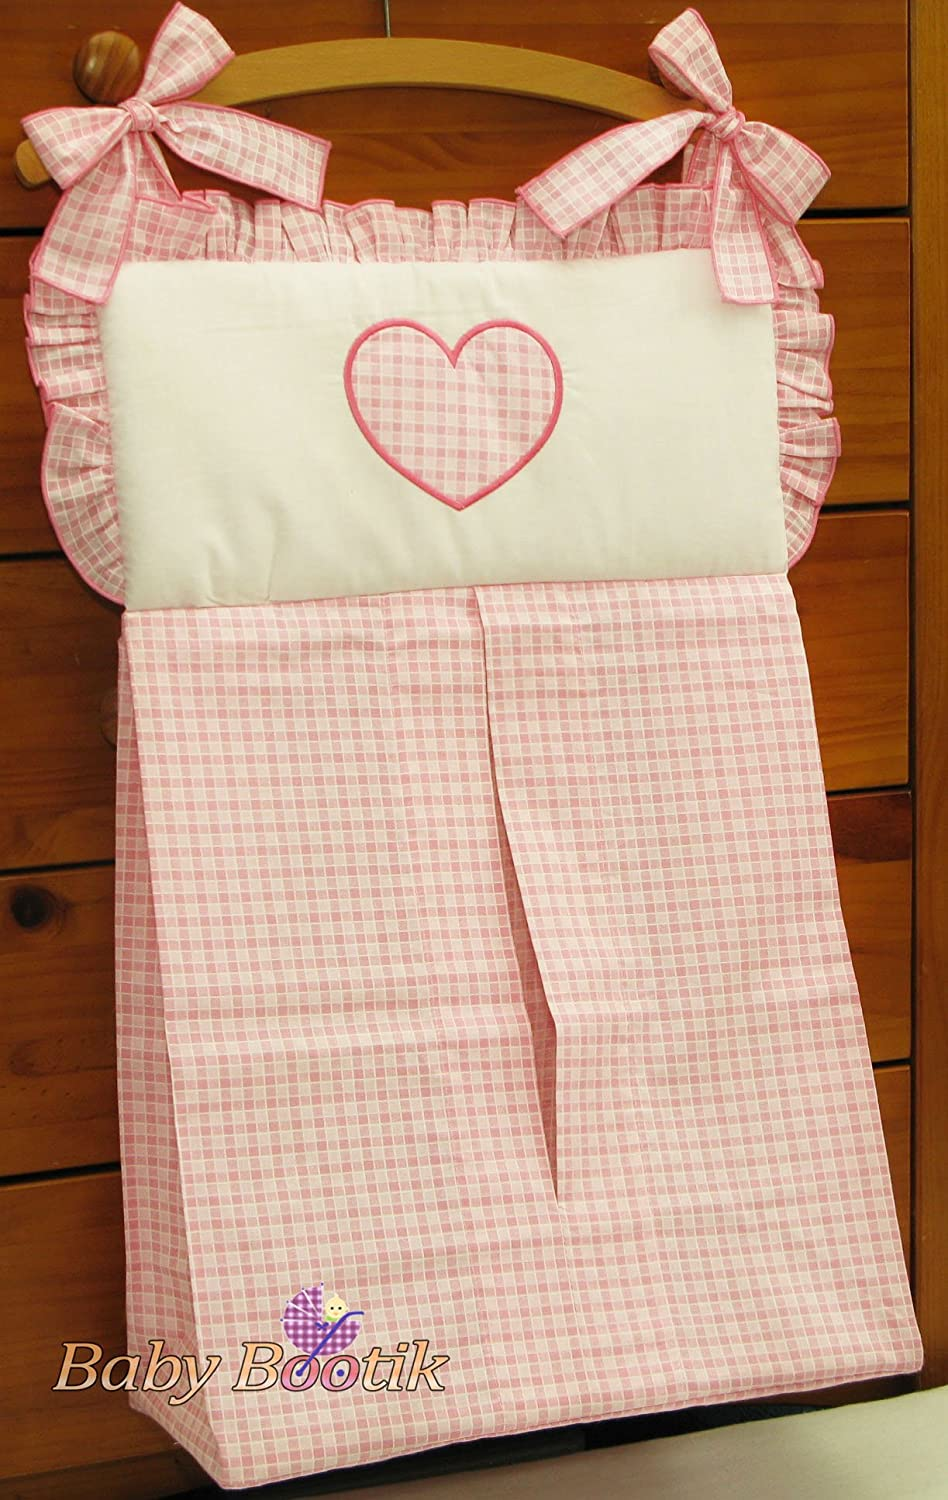 NAPPY STACKER/DIAPER BAG MATCH BABY NURSERY COT/COT BED BEDDING - HEARTS PINK Babycomfort